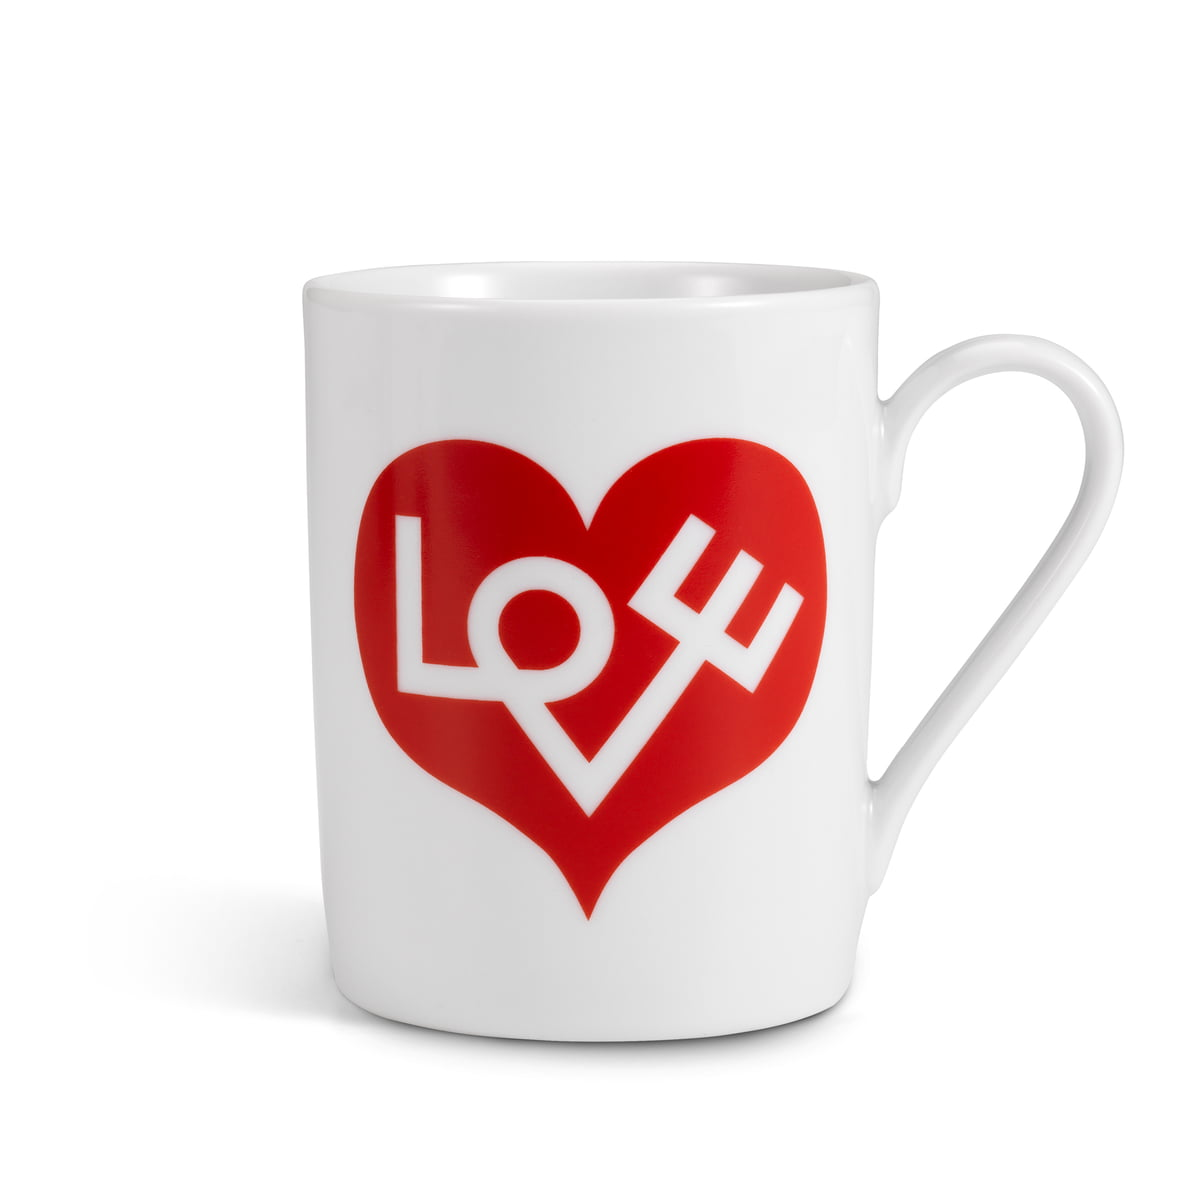 Coffee mug love heart red